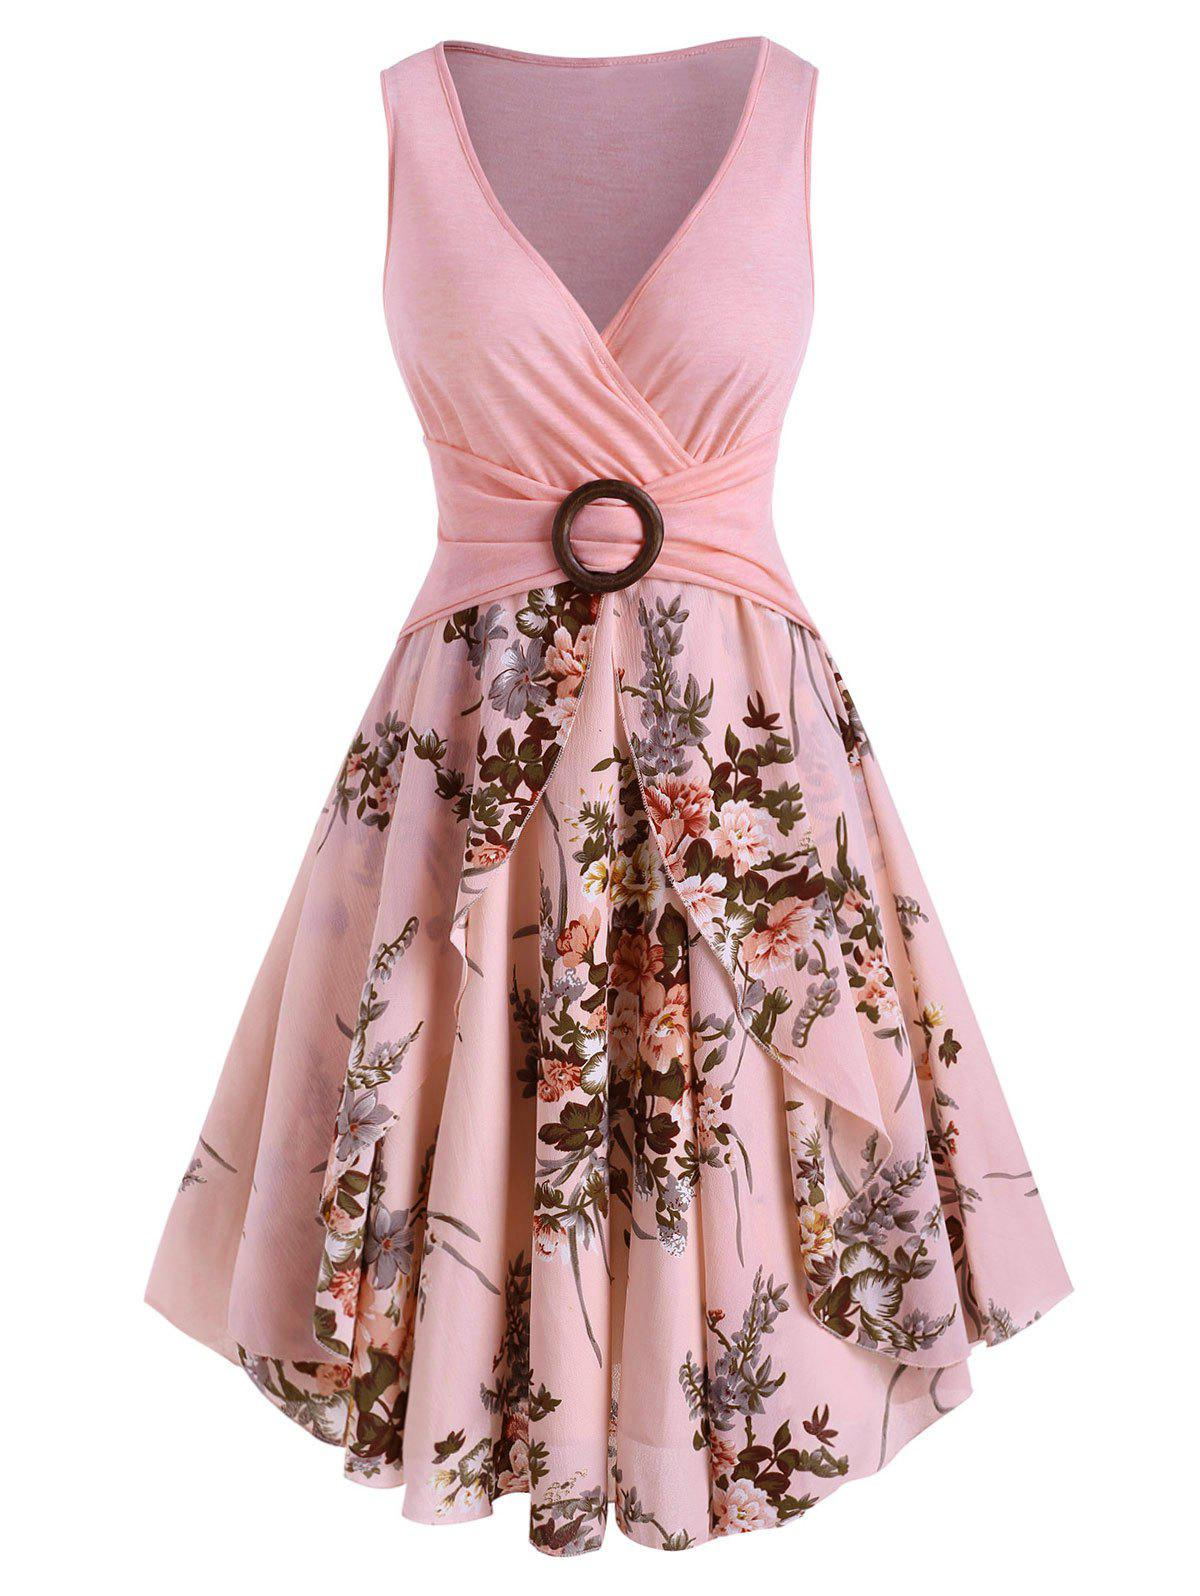 Online Floral Print O Ring Sleeveless Plunging Dress